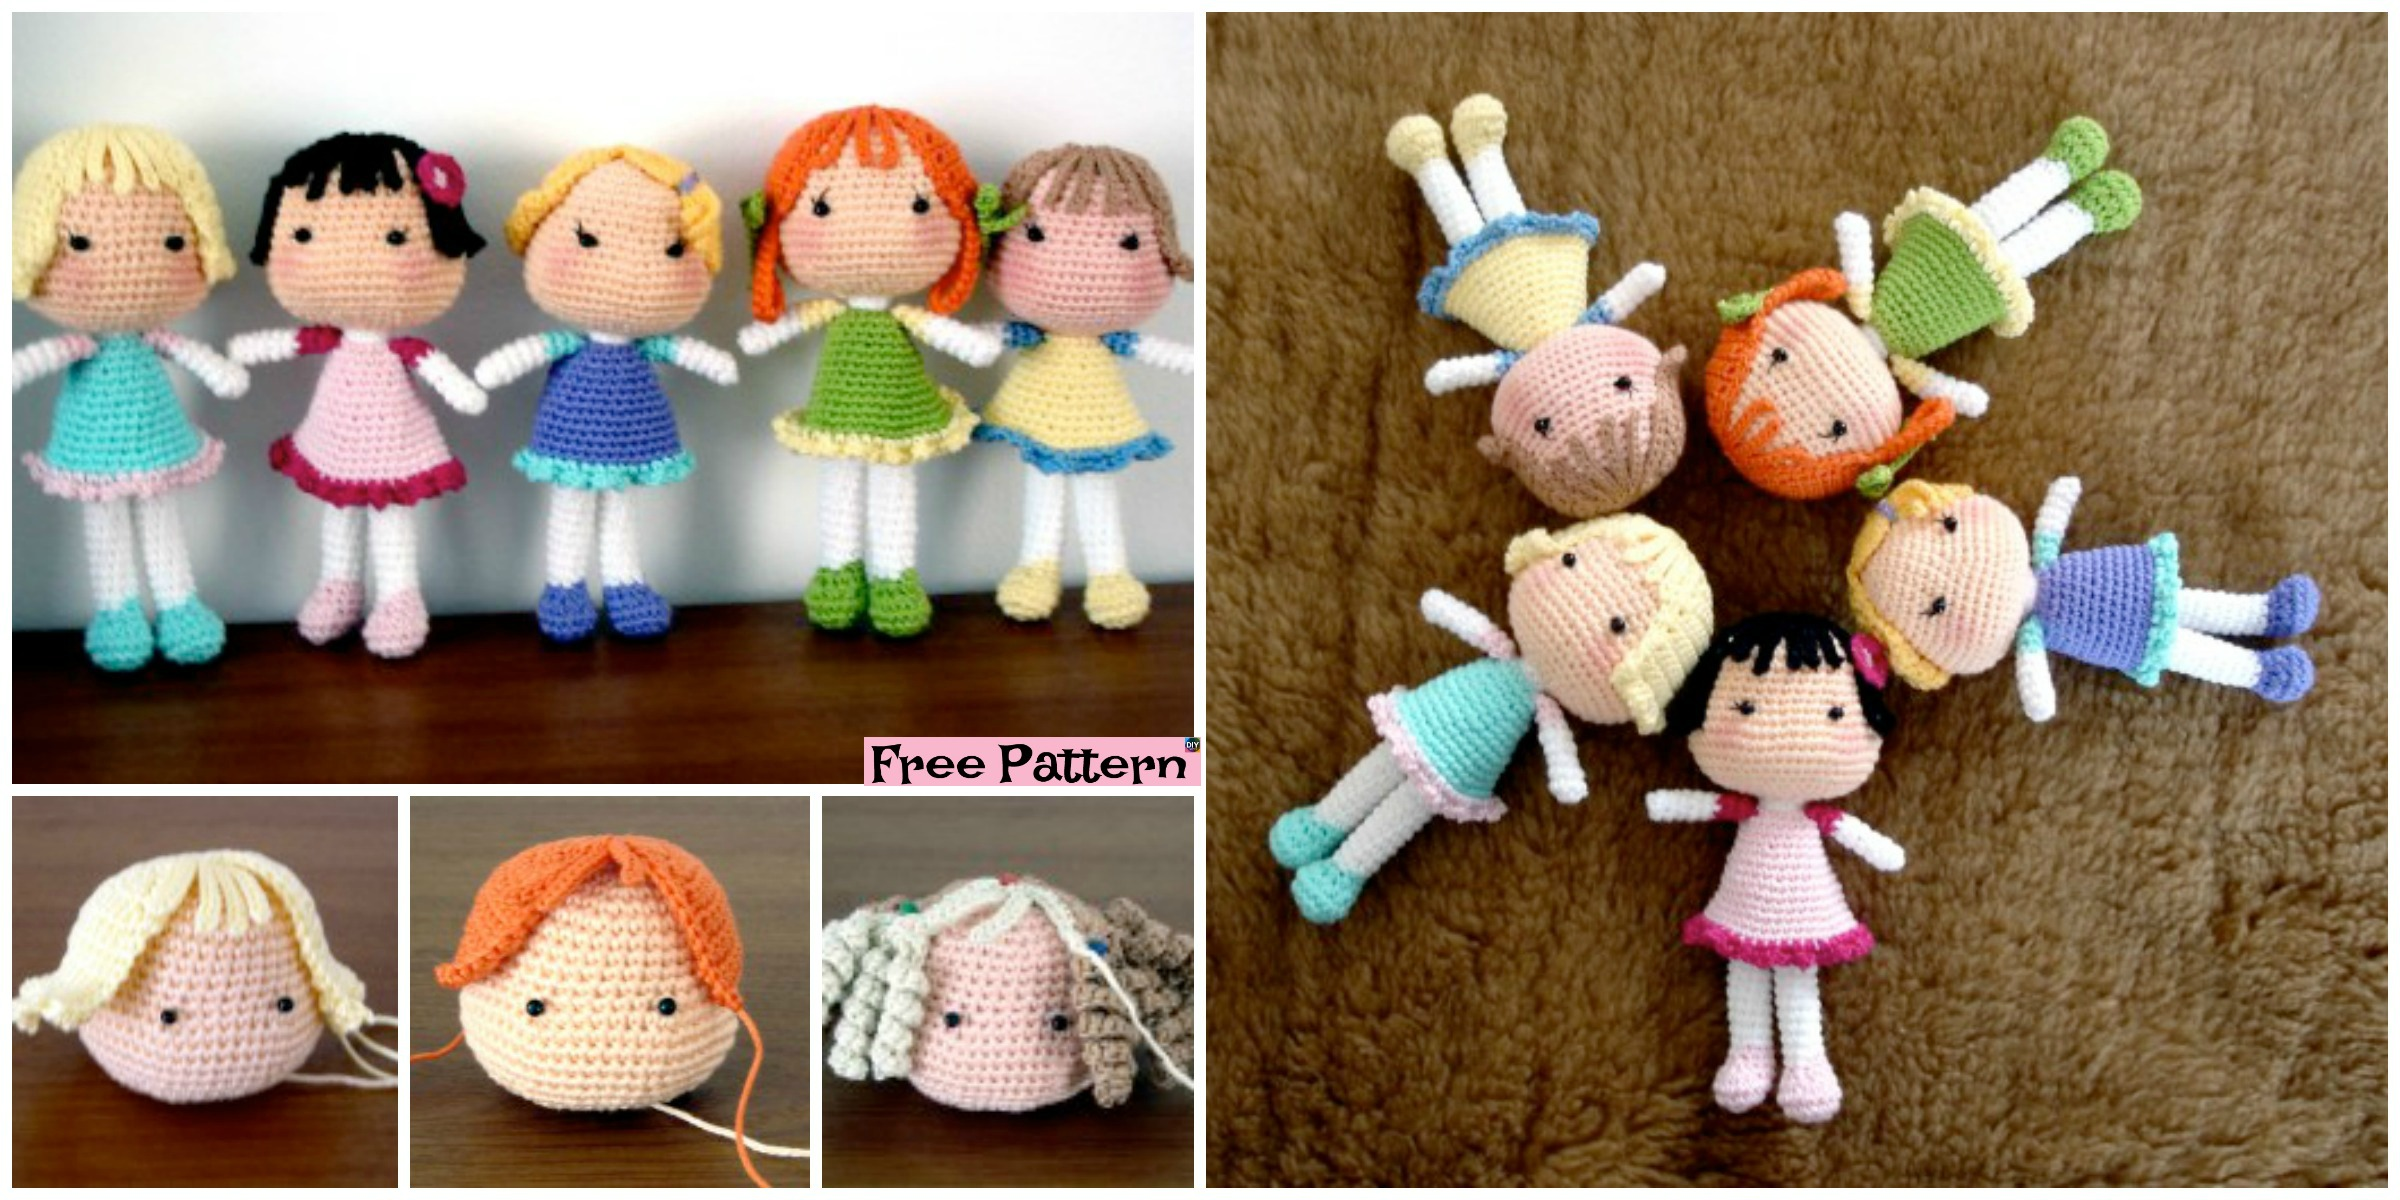 Amigurumi Molly Doll-Free Pattern | Crochet dolls free patterns ... | 1200x2400